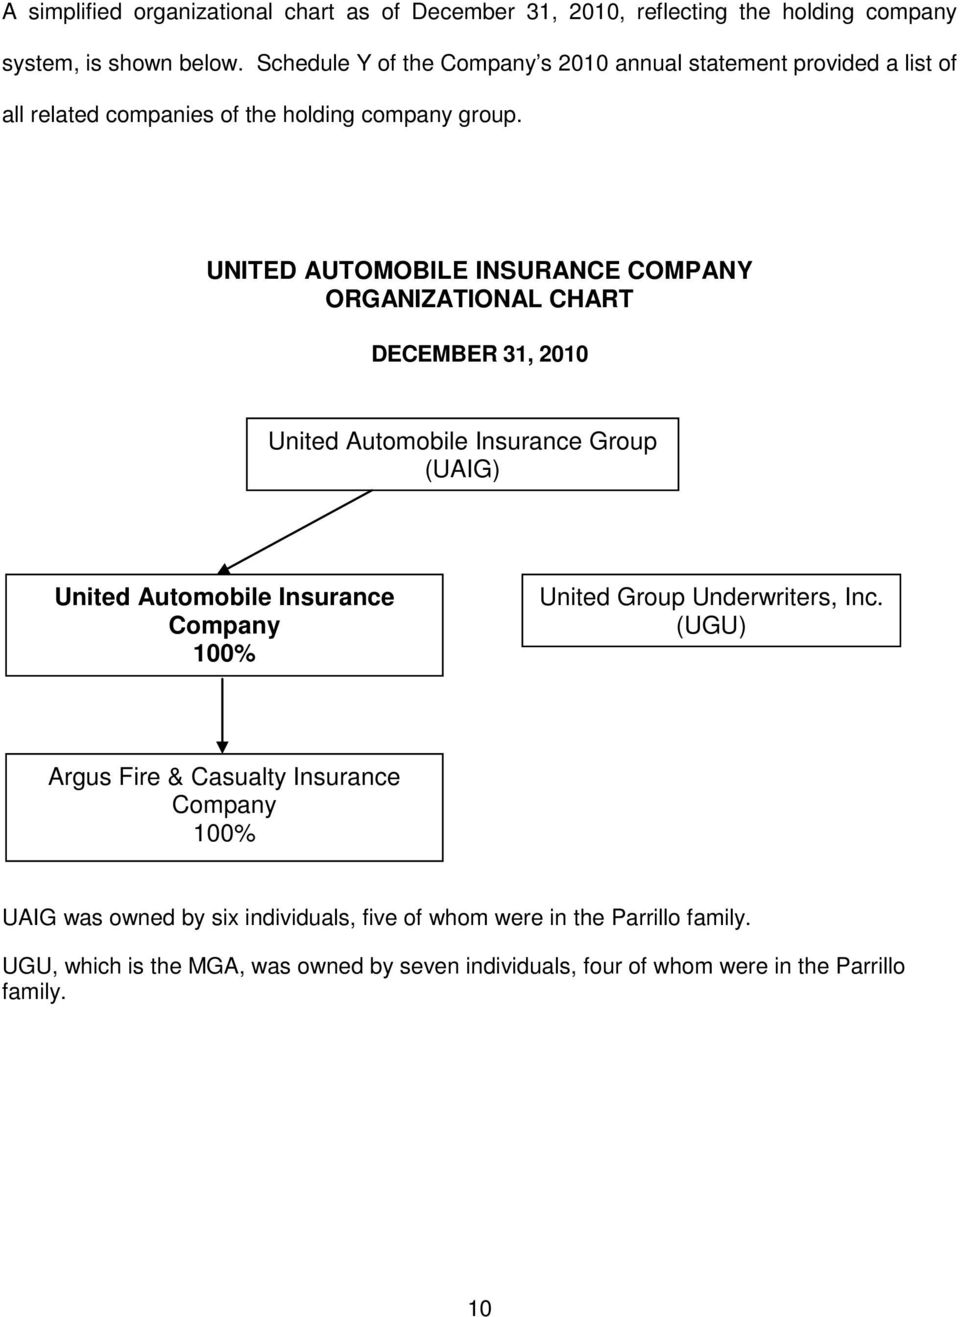 UNITED AUTOMOBILE INSURANCE COMPANY ORGANIZATIONAL CHART DECEMBER 31, 2010 United Automobile Insurance Group (UAIG) United Automobile Insurance Company 100%